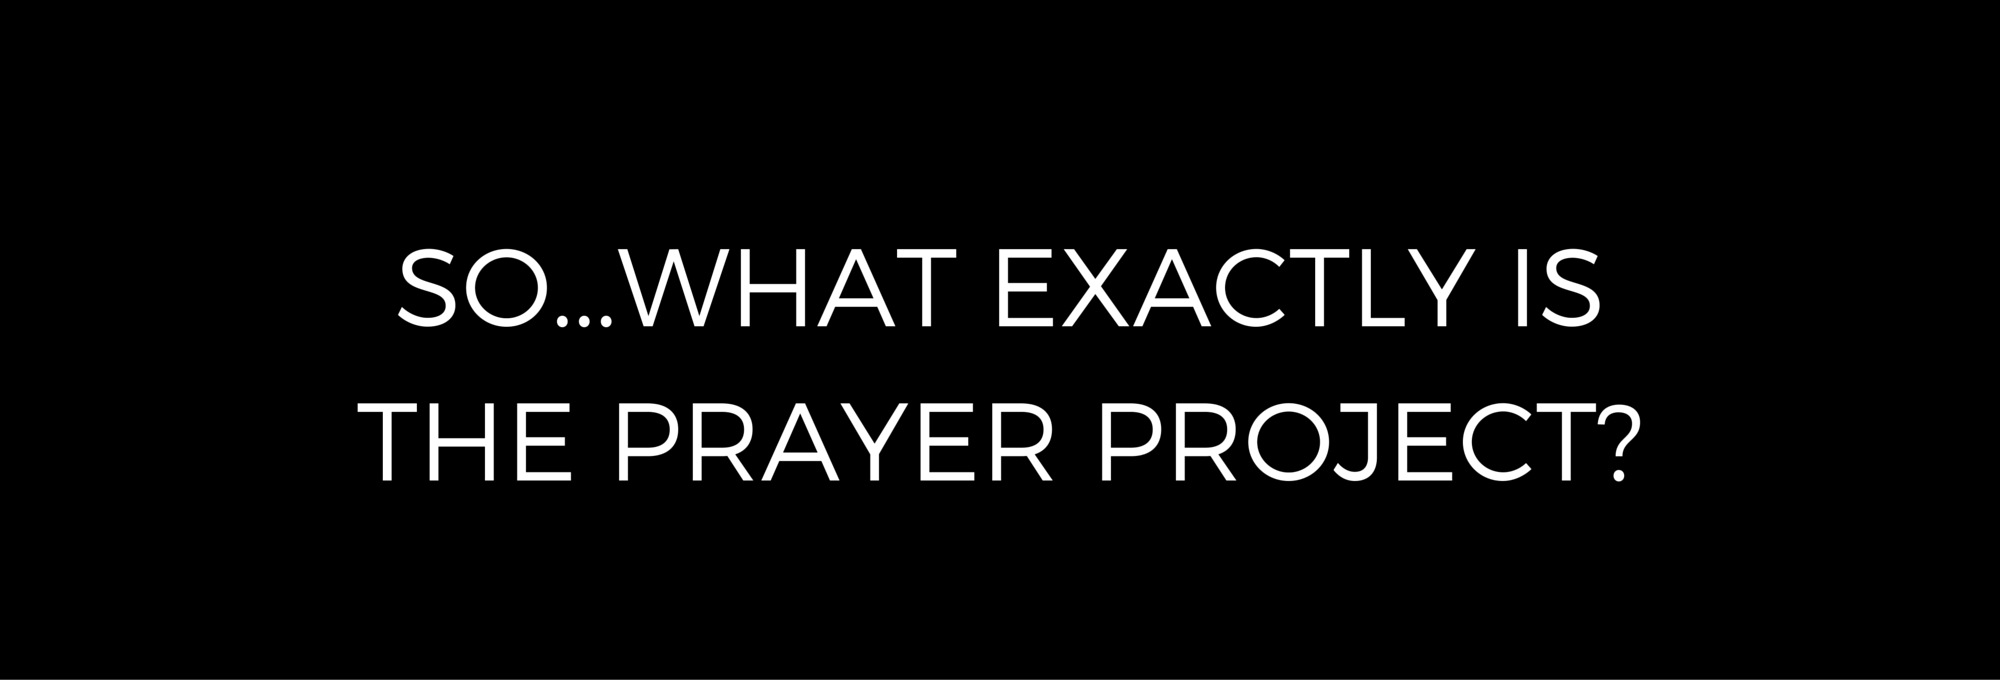 So...What Exactly Is The Prayer Project-.png